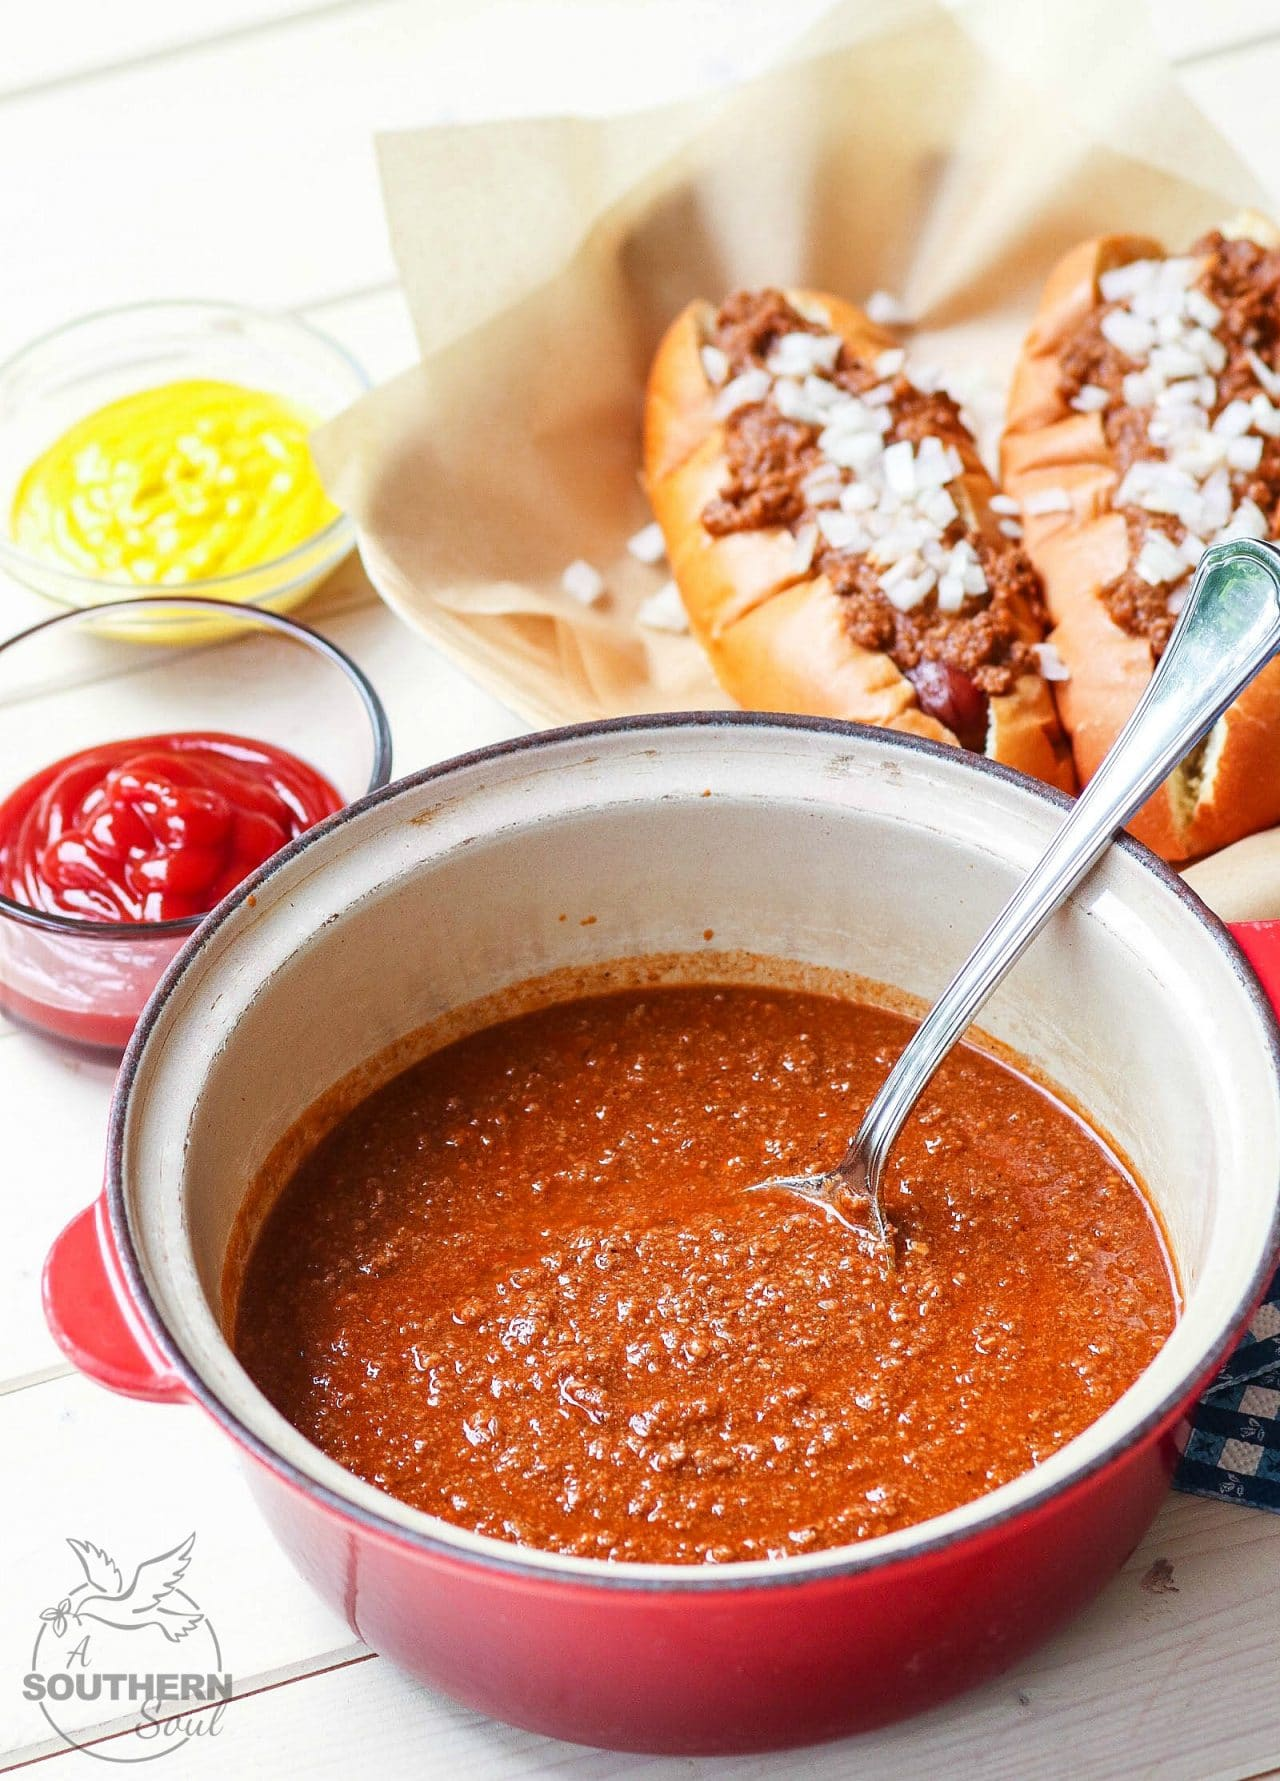 Home Run Hot Dog Chili is the best topping for your grilled dogs. Made with ground beef, herbs and spices for a savory recipe that's easy to make.